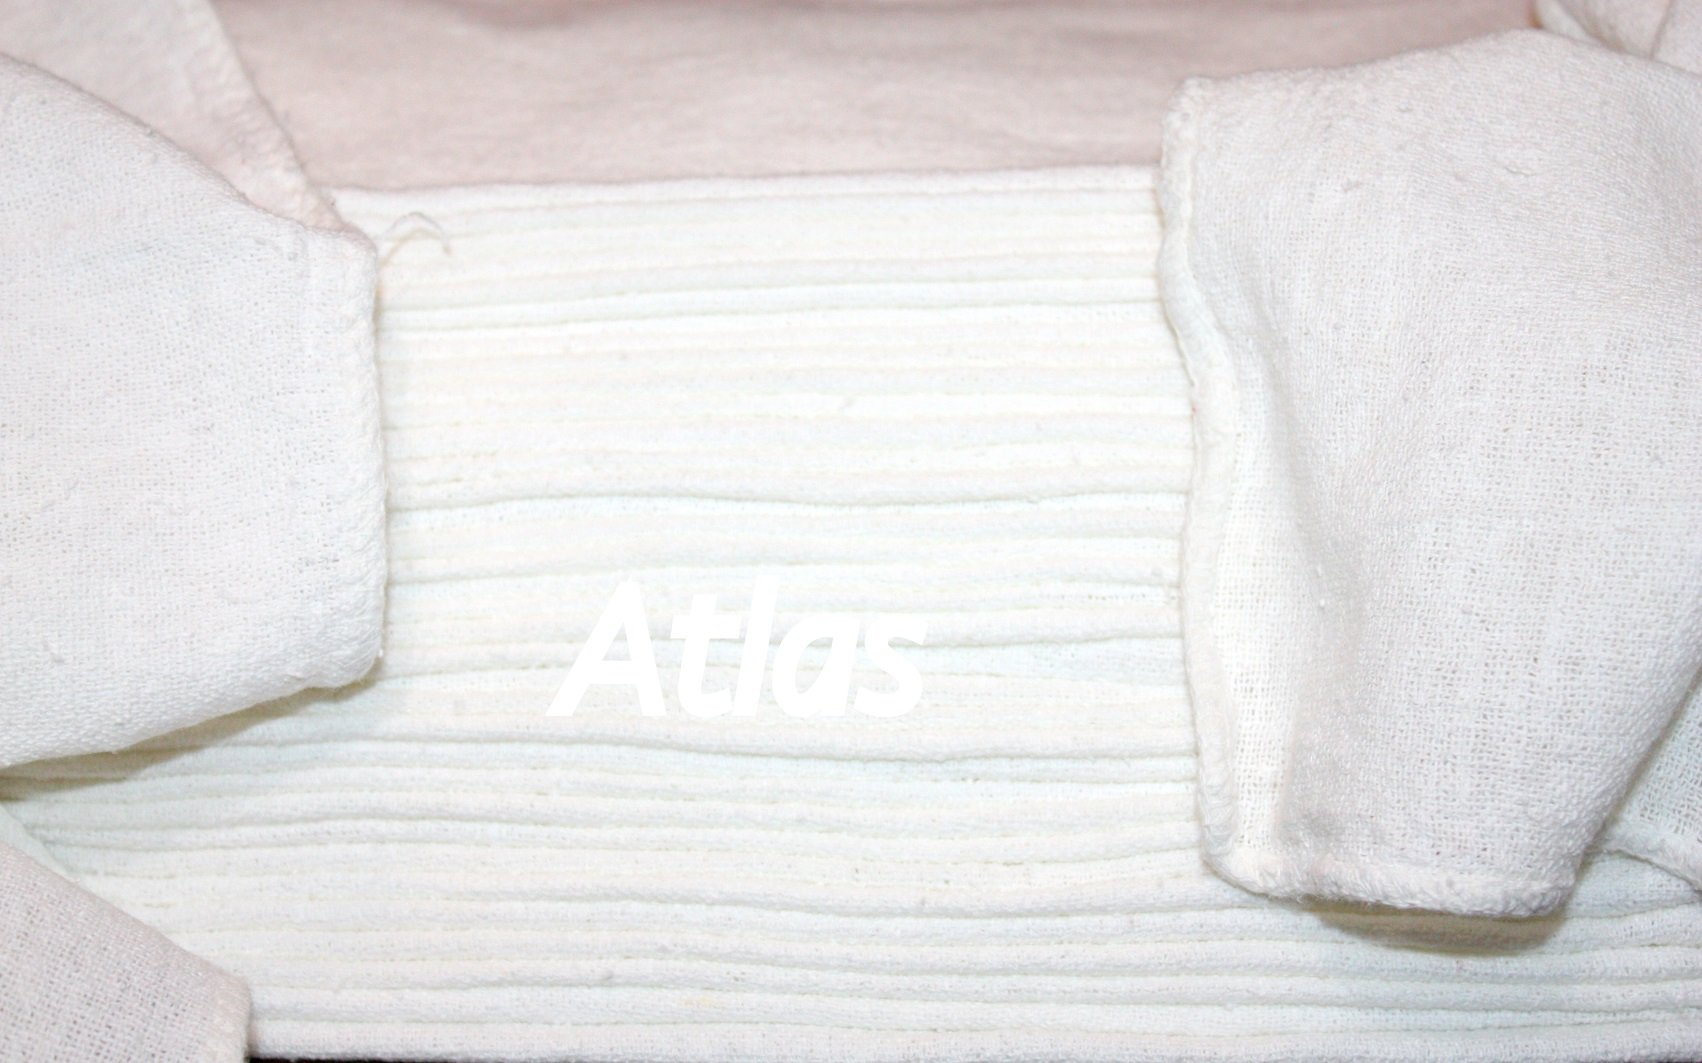 ATLAS 500 Pcs White 100% Cotton Rags Shop Towel, Industrial Strength, New, for Wiping Machinery, Tools, Floors, Spills